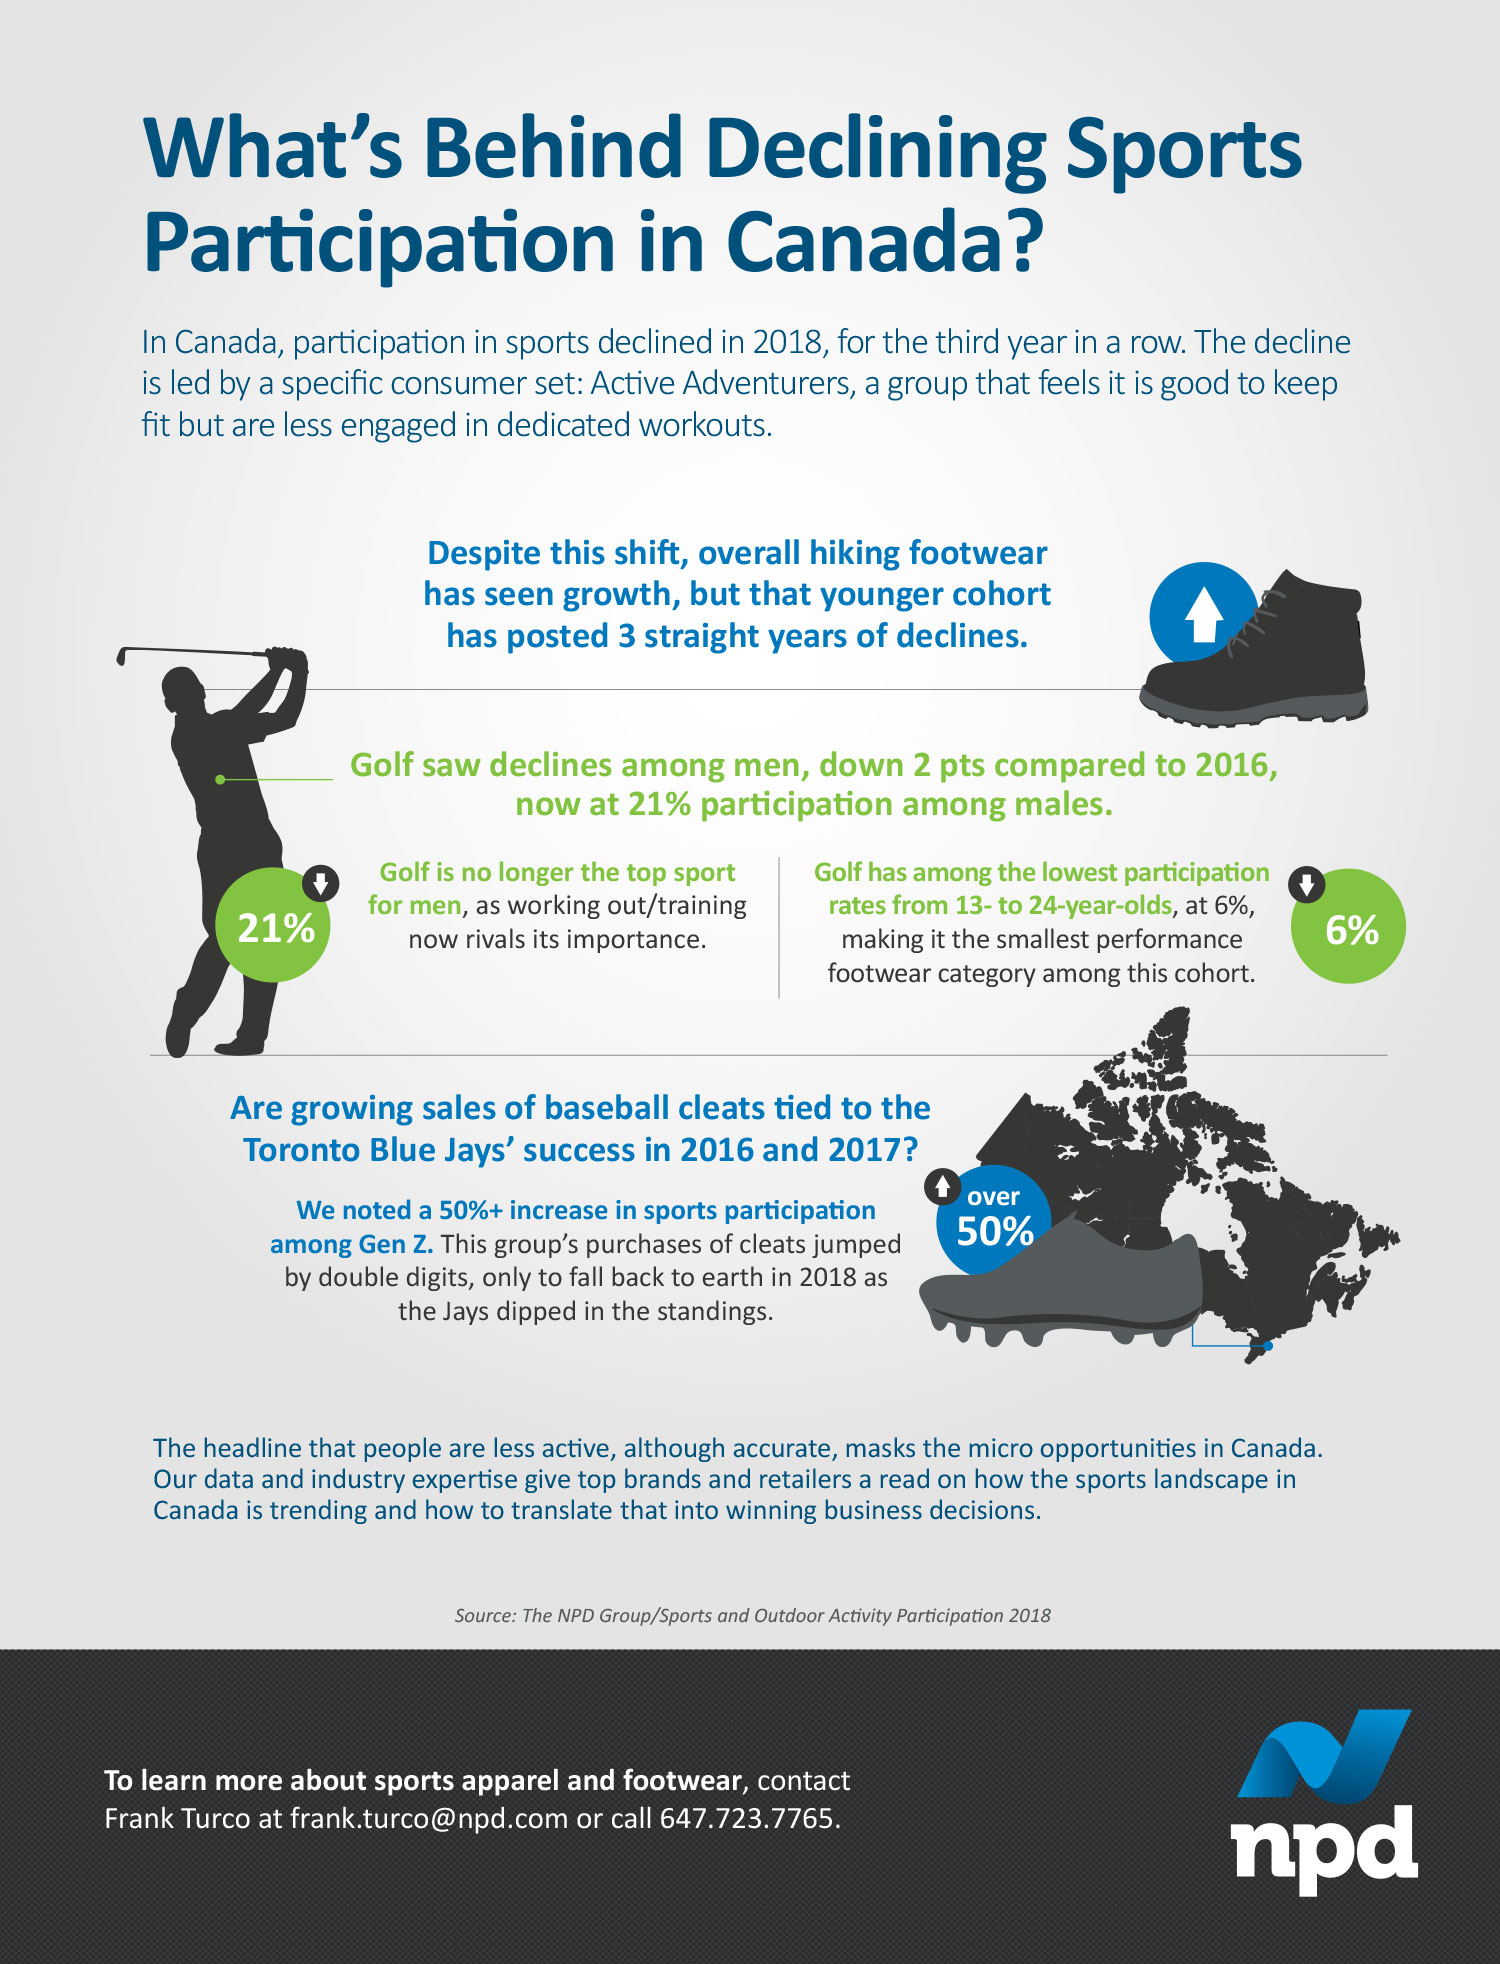 Canadians' sports participation declined in 2018, for the third year in a row, as they became less engaged in dedicated workouts. What's the impact and what does it mean for your business?